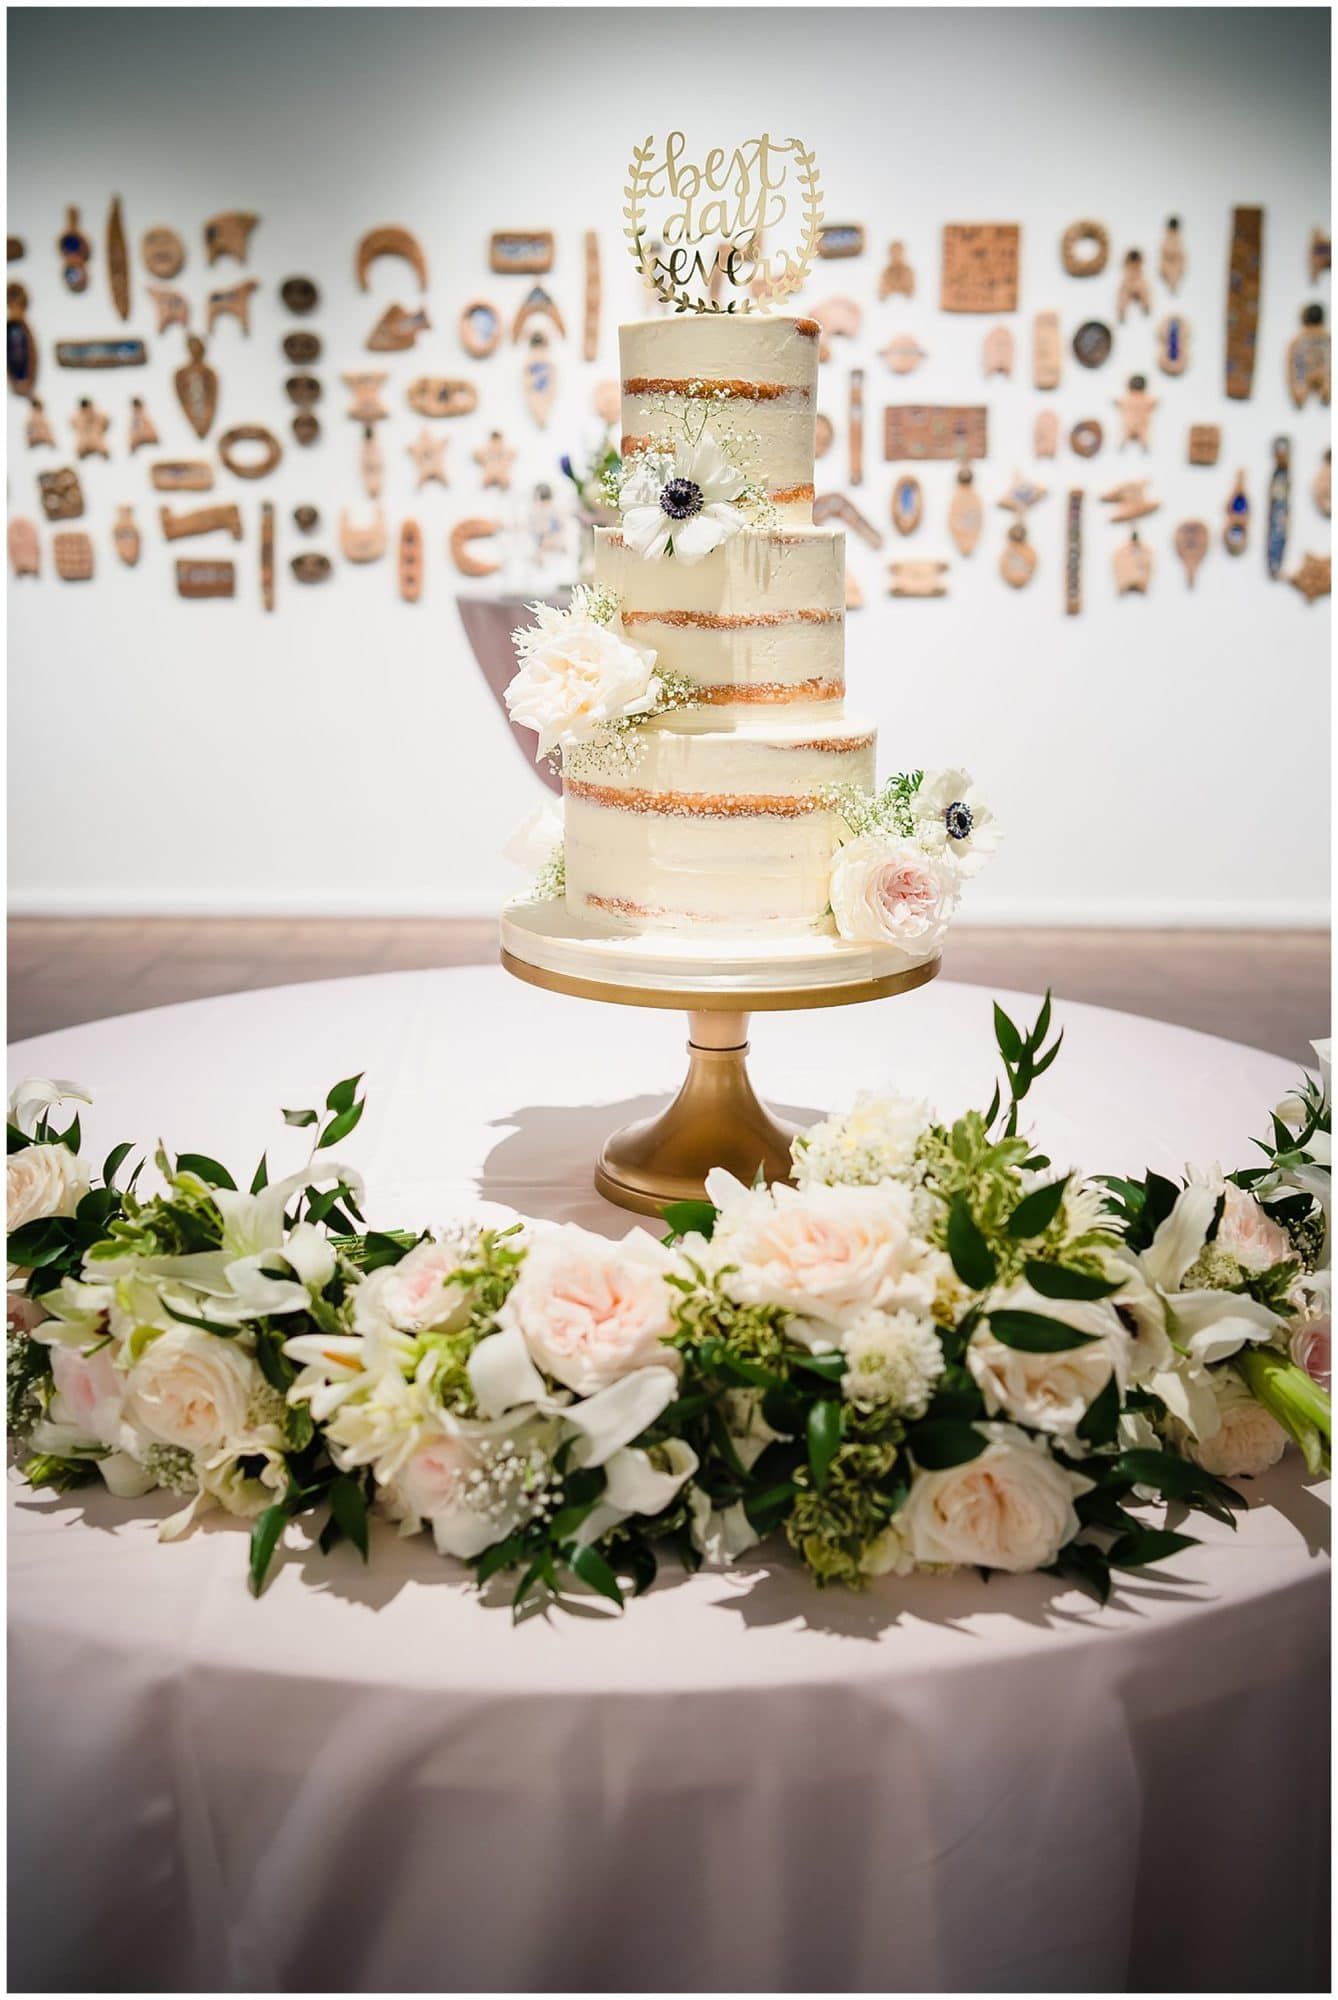 naked wedding cake at Baton Rouge gallery venue